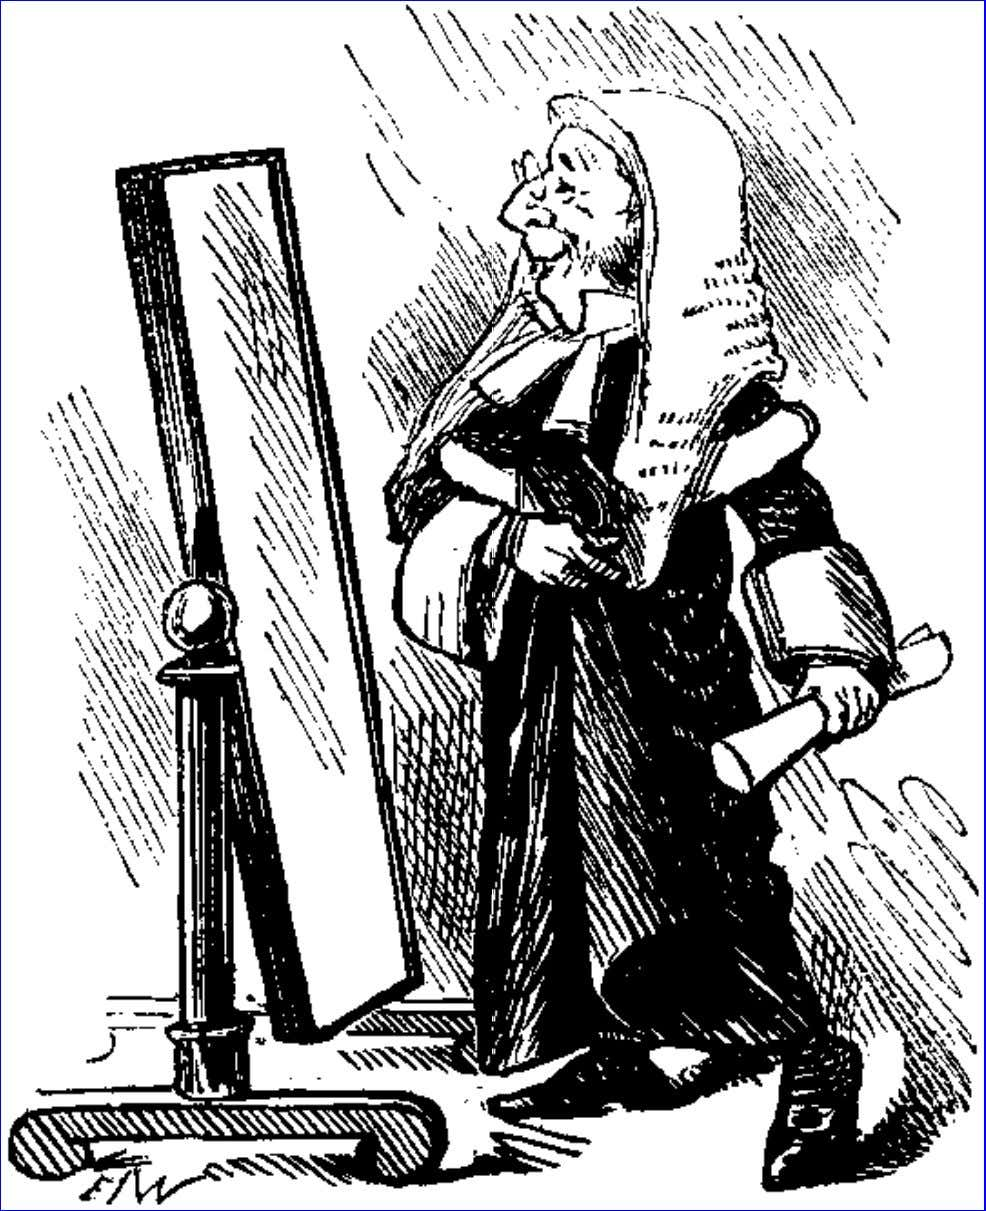 Punch, November 29, 1890. The Mirror of Justice. For drawing-room plays apply to GEORGE ROUTLEDGE, who